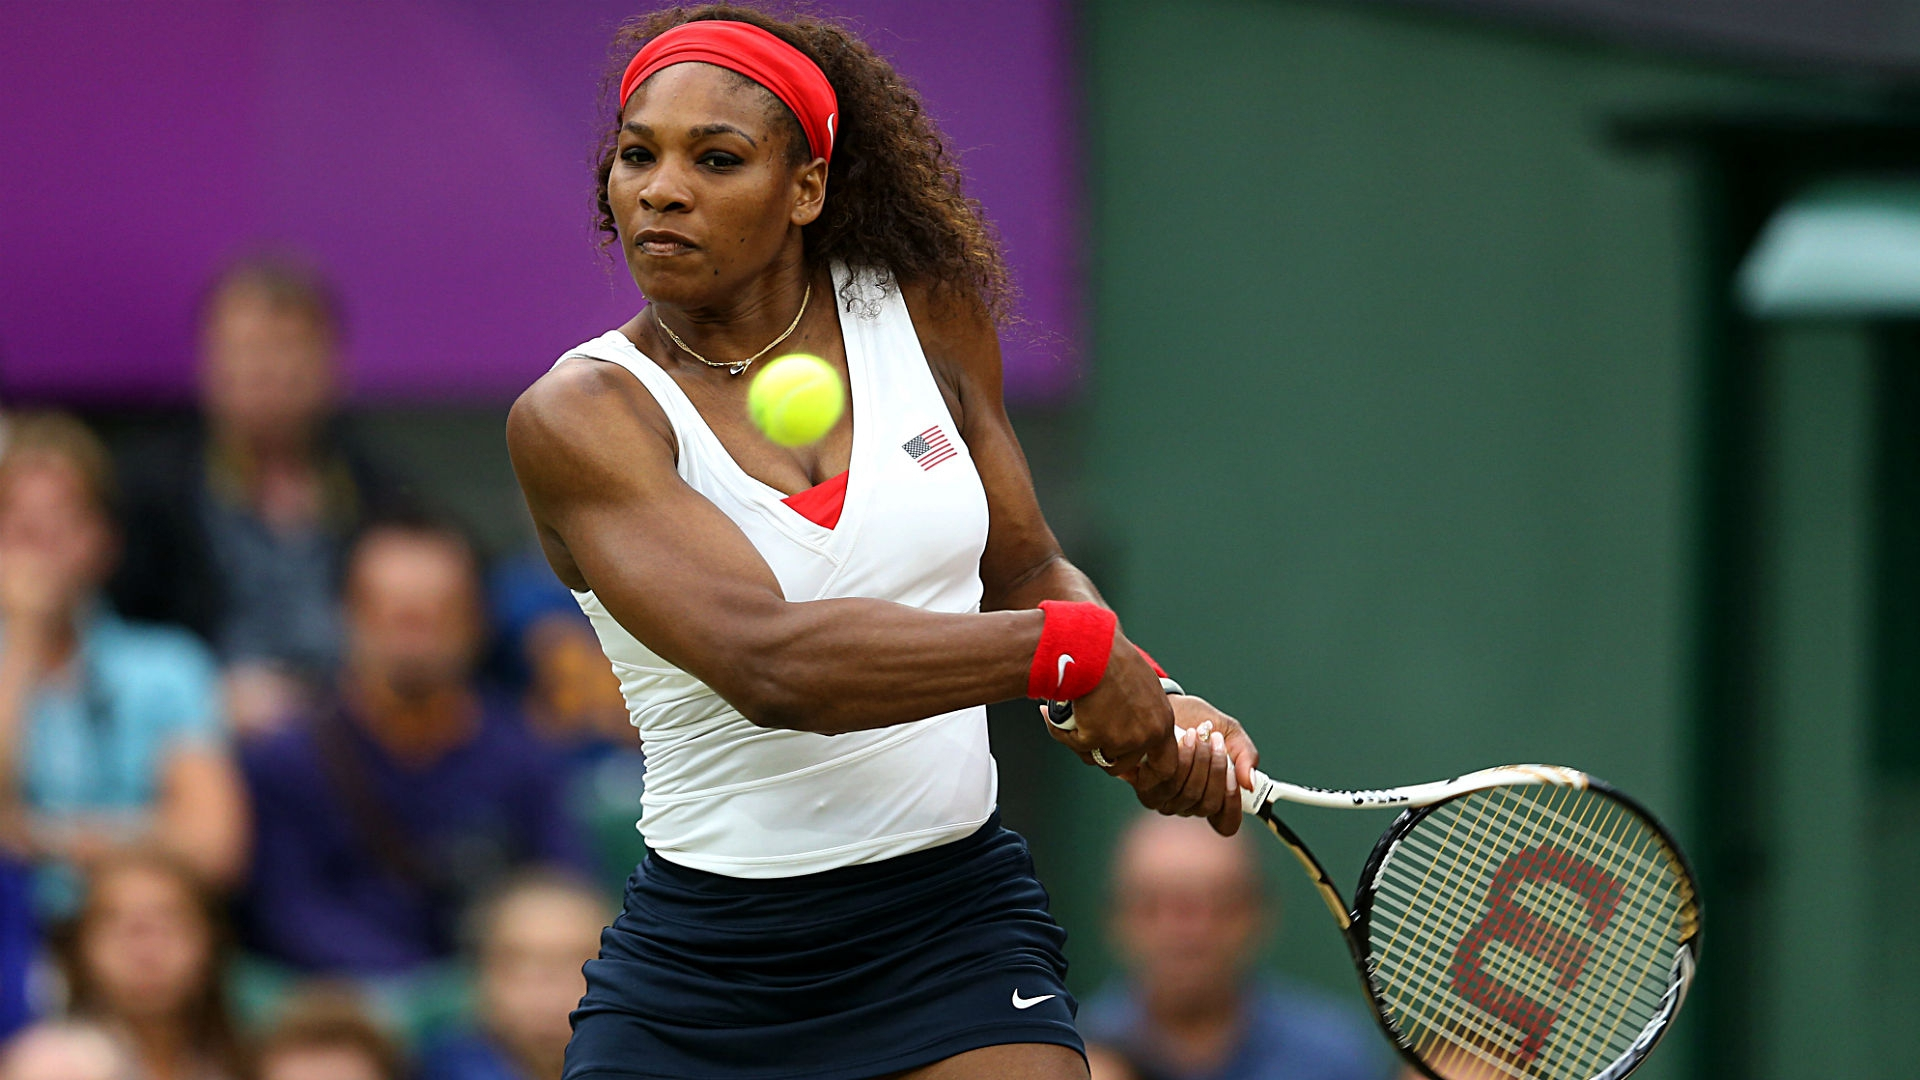 Williams: Serena Williams Wallpapers Images Photos Pictures Backgrounds